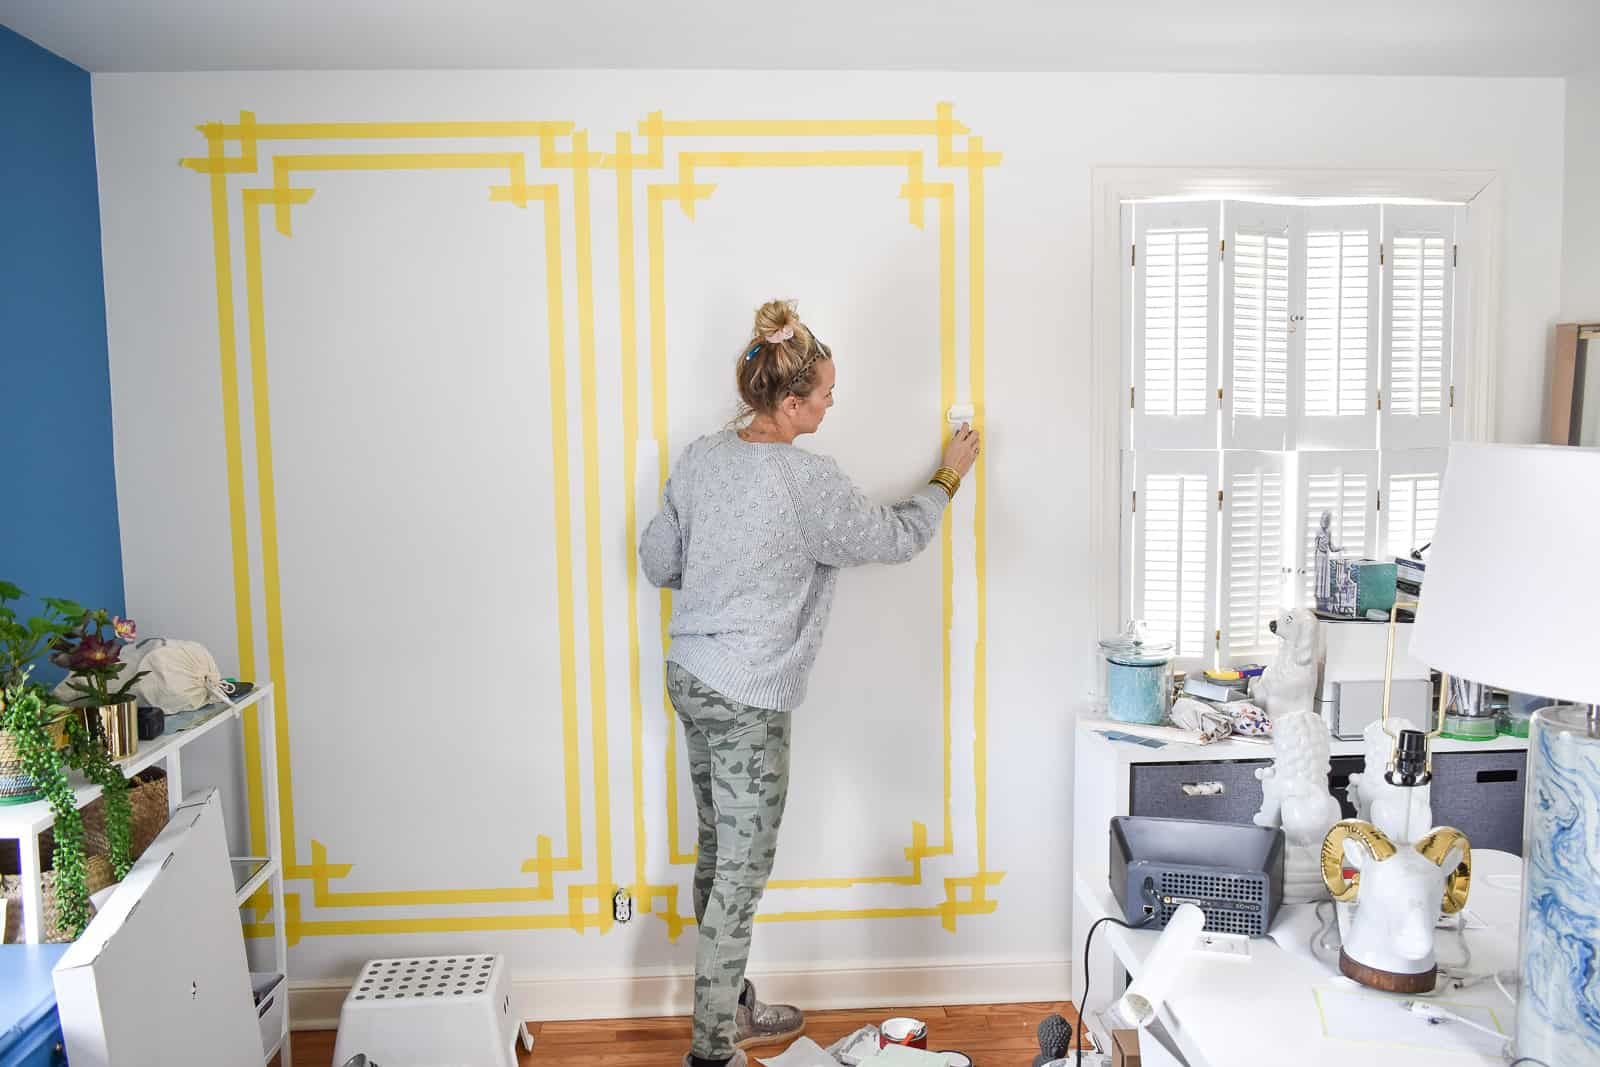 paint between the tape lines